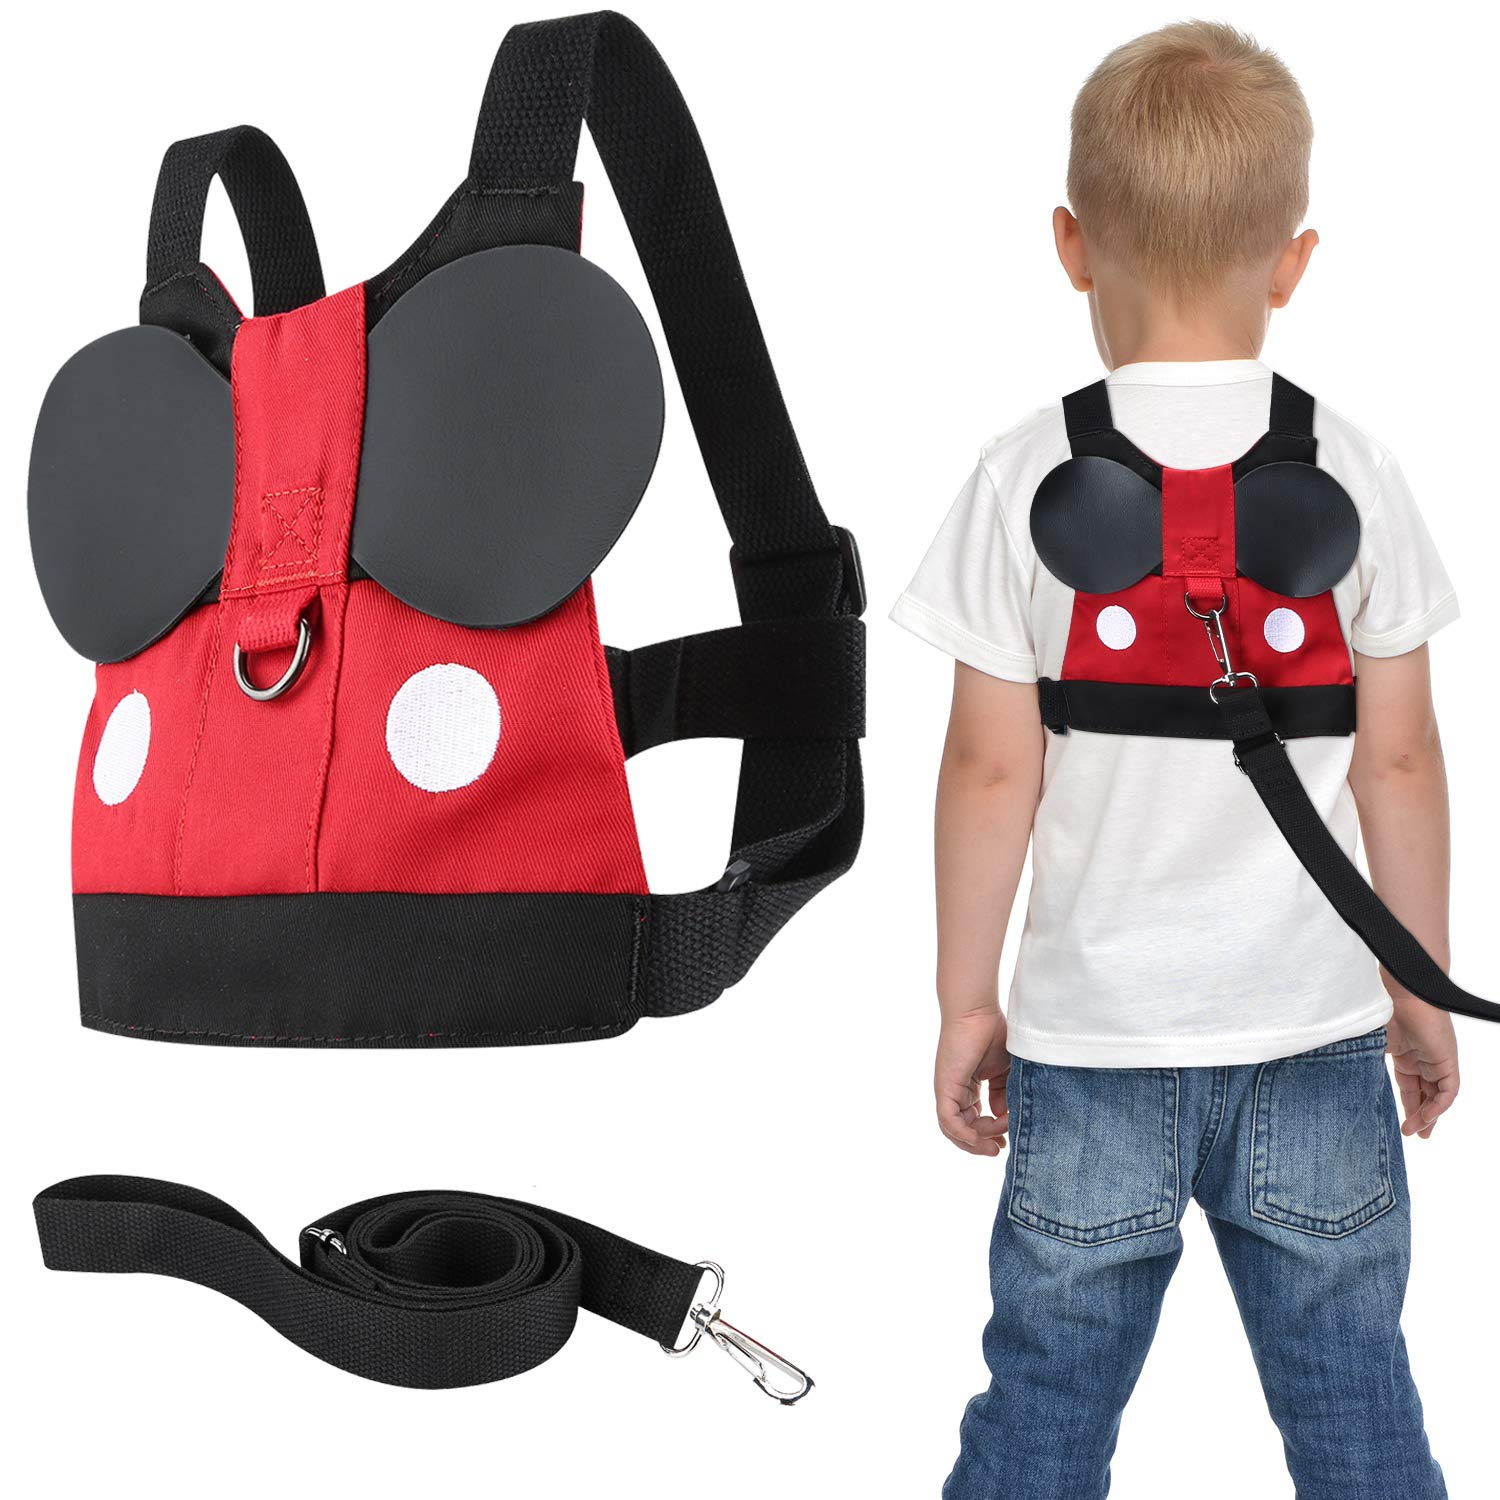 Flashbluer Anti Lost Safety Harness with Safety Leash Cute Design Toddler Leash for Toddlers Age 1-3 Years Old Boys and Girls